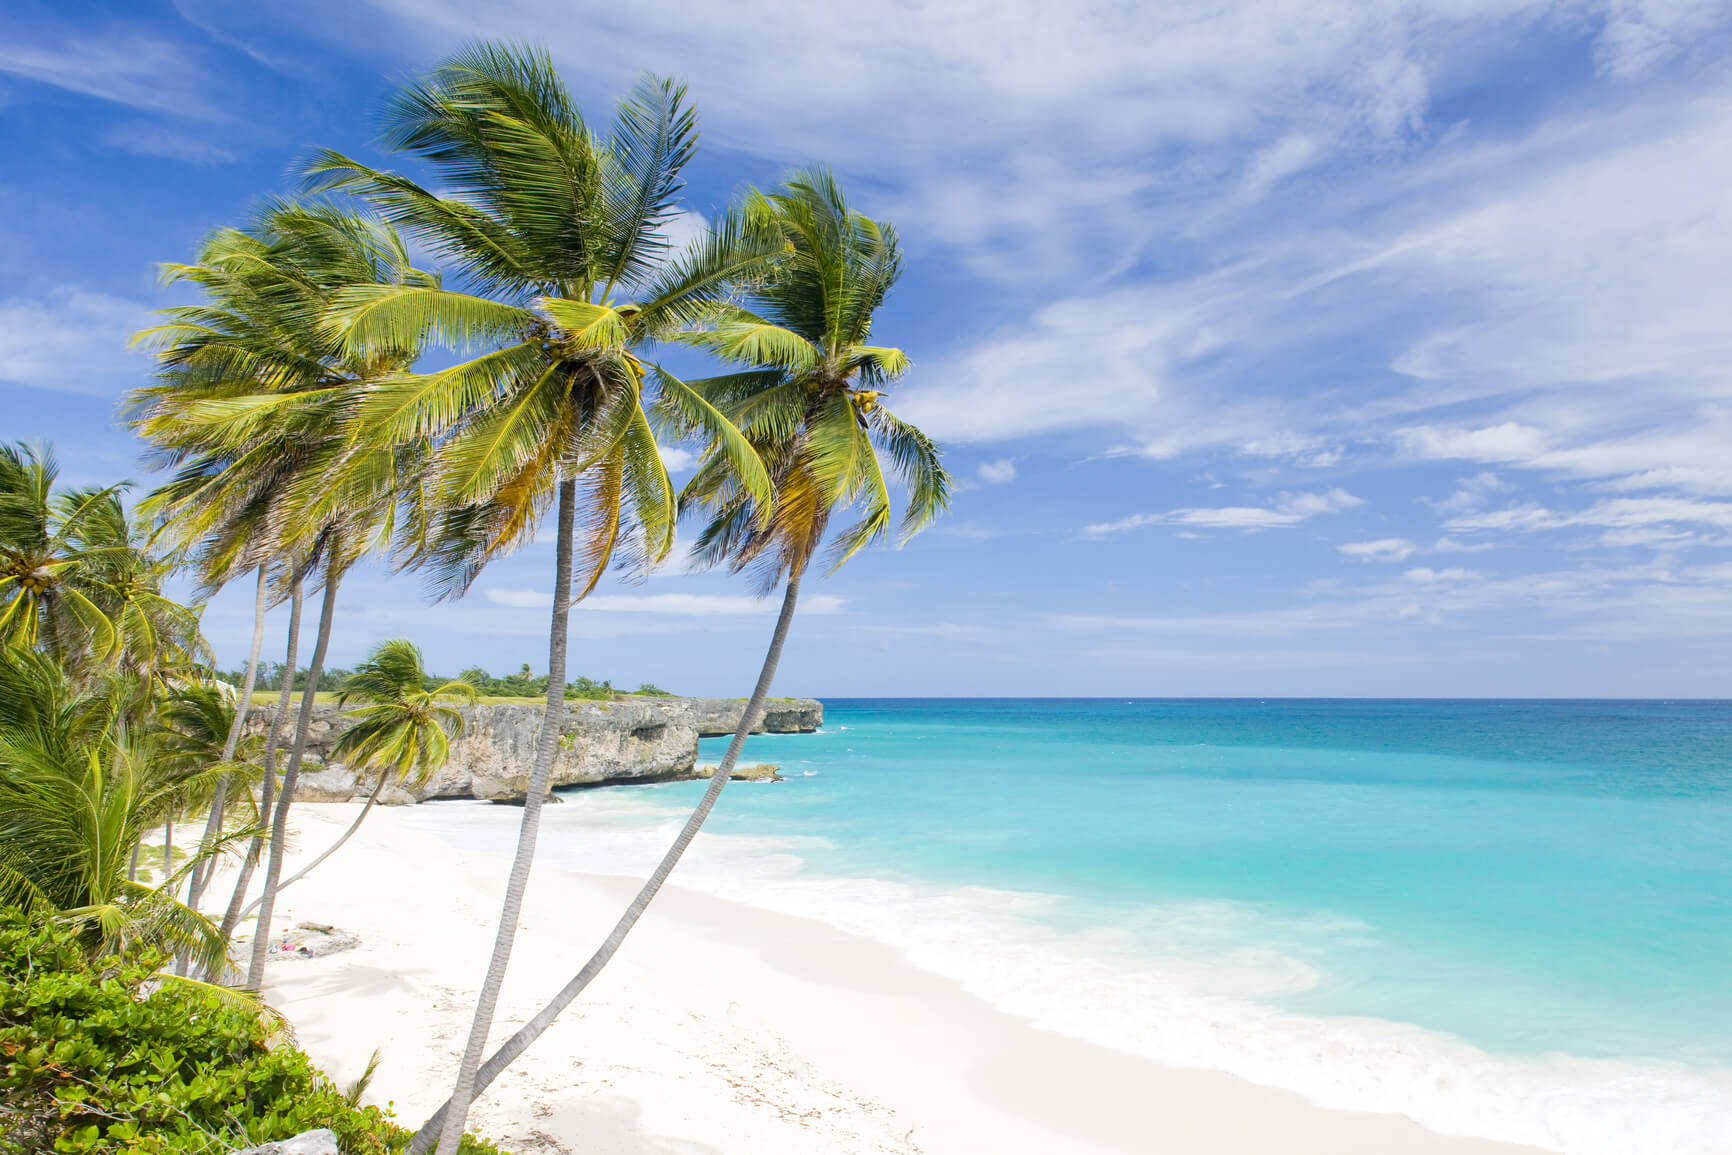 Manchester, UK to Barbados or Antigua from only £279 roundtrip